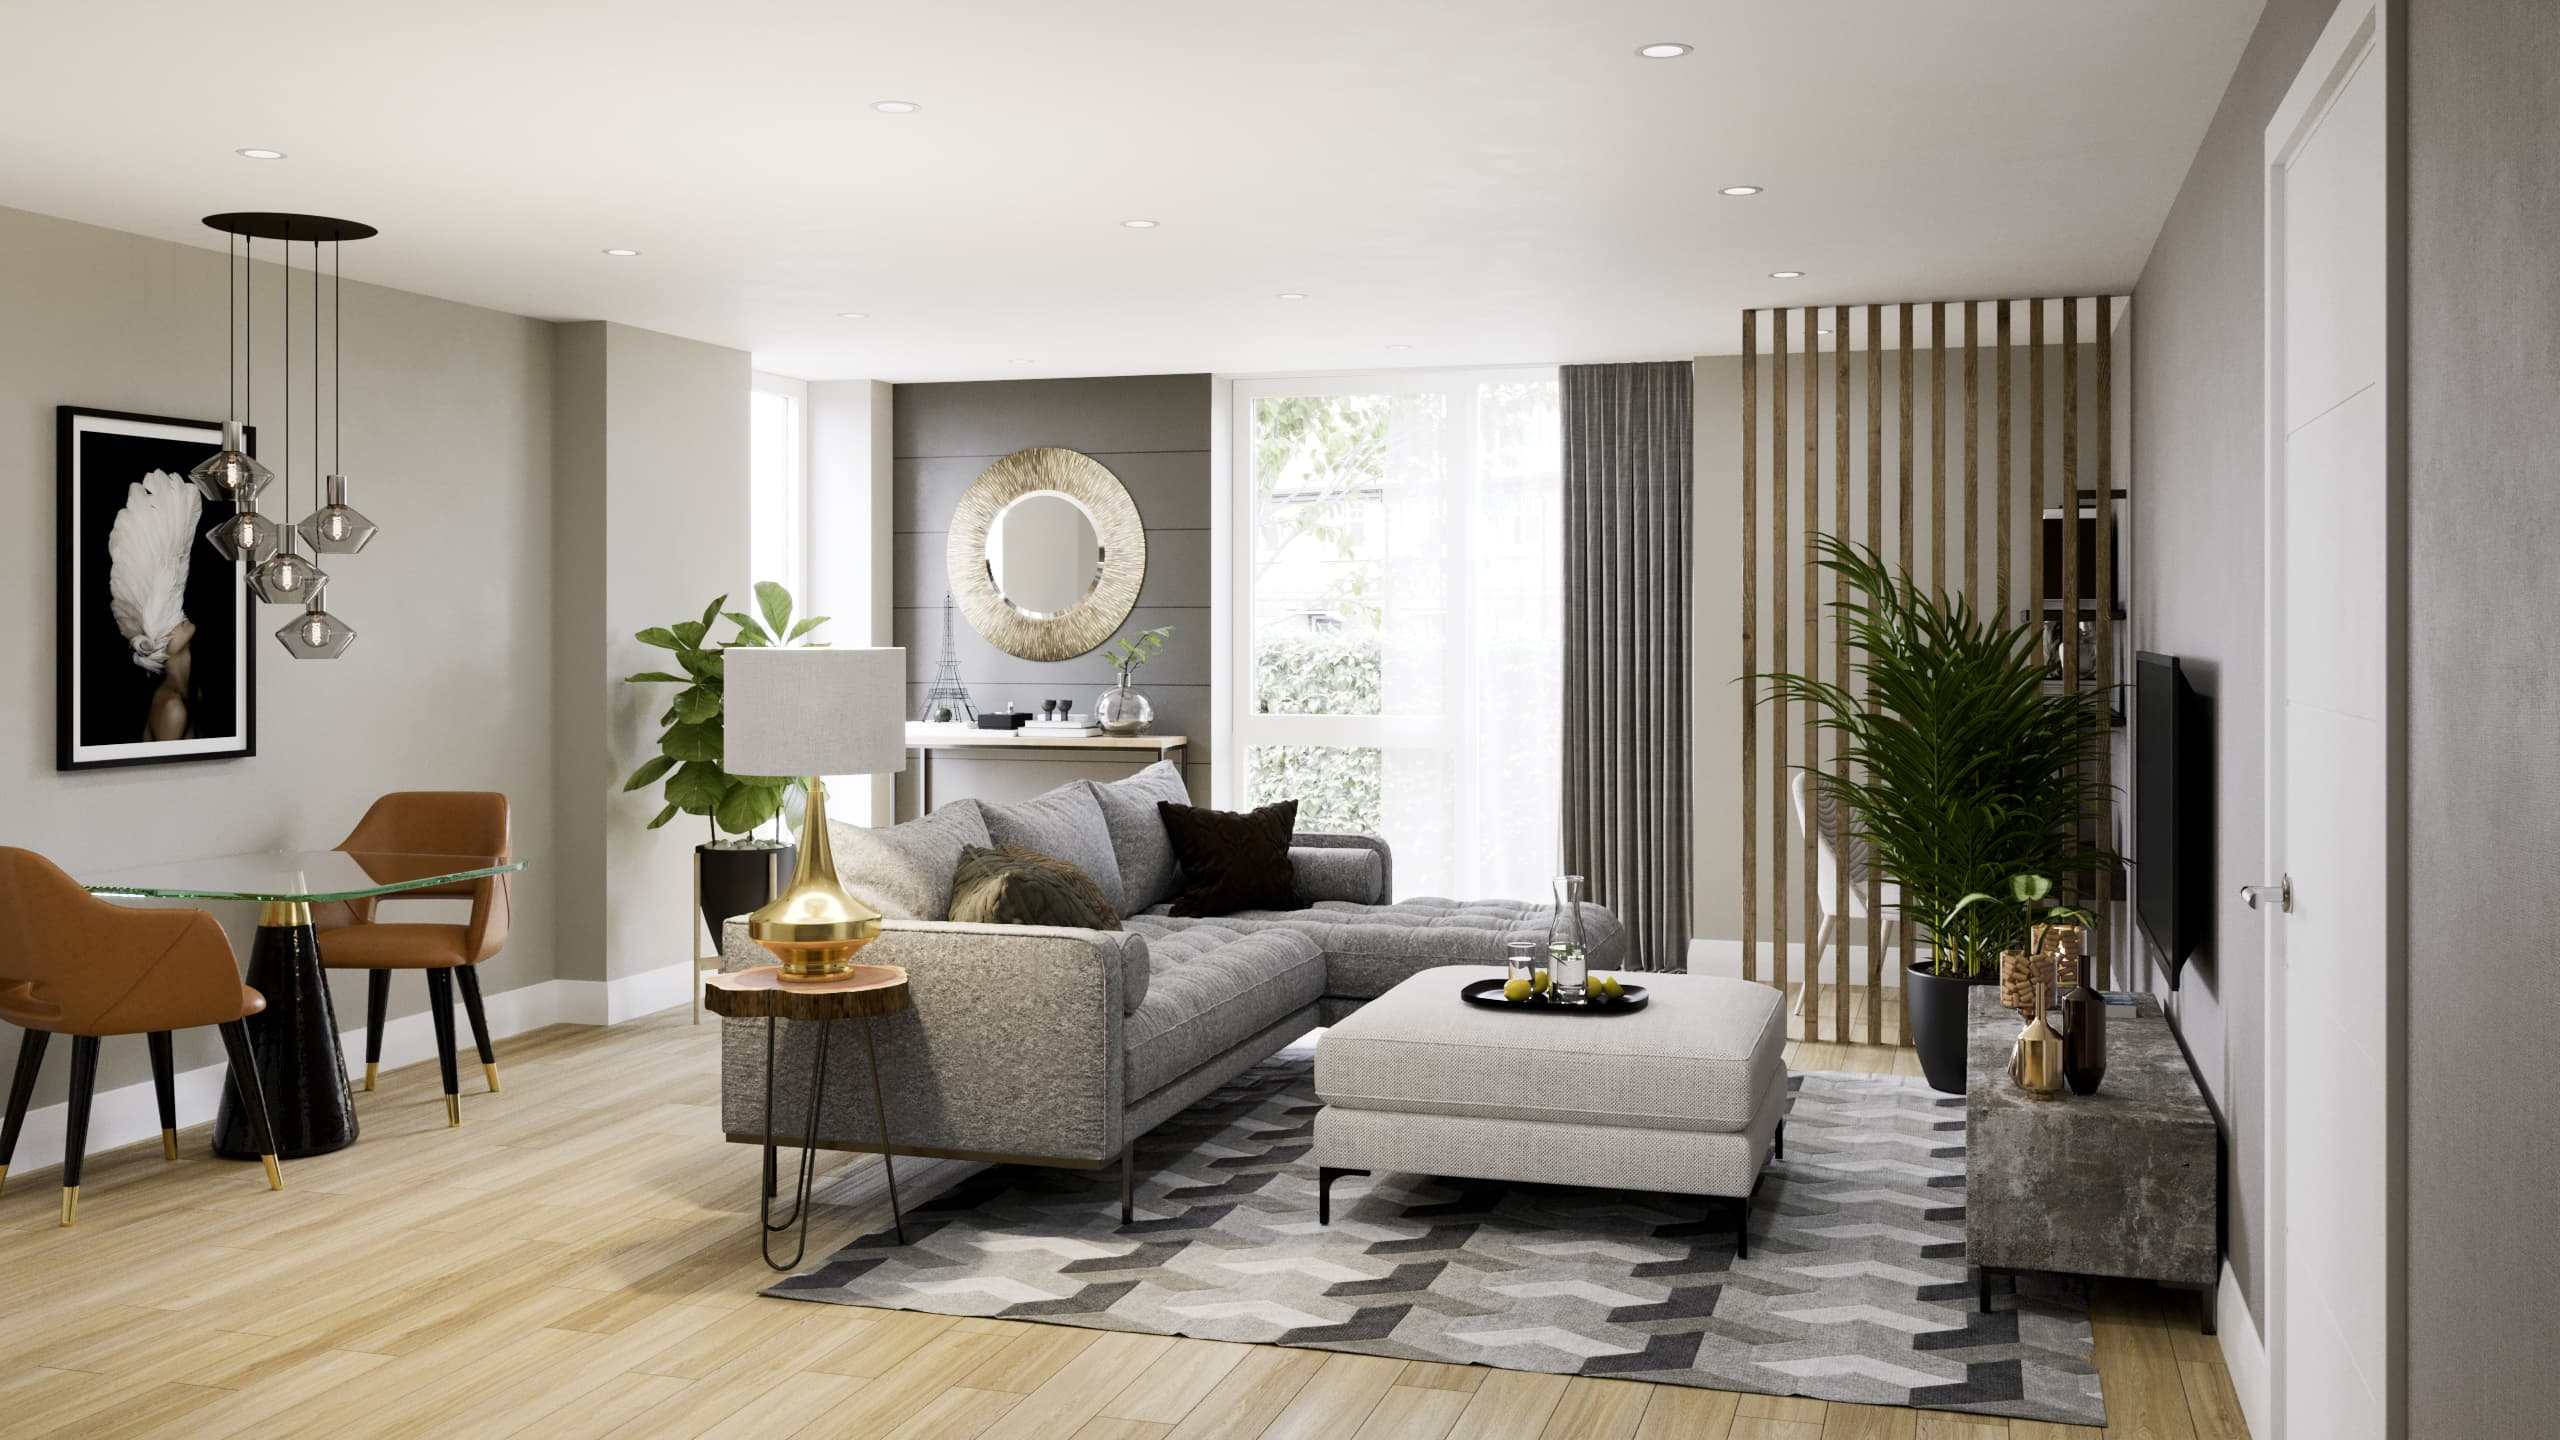 Show home photography of a living room at Catalyst's The Folium - Shared Ownership homes available on Share to Buy